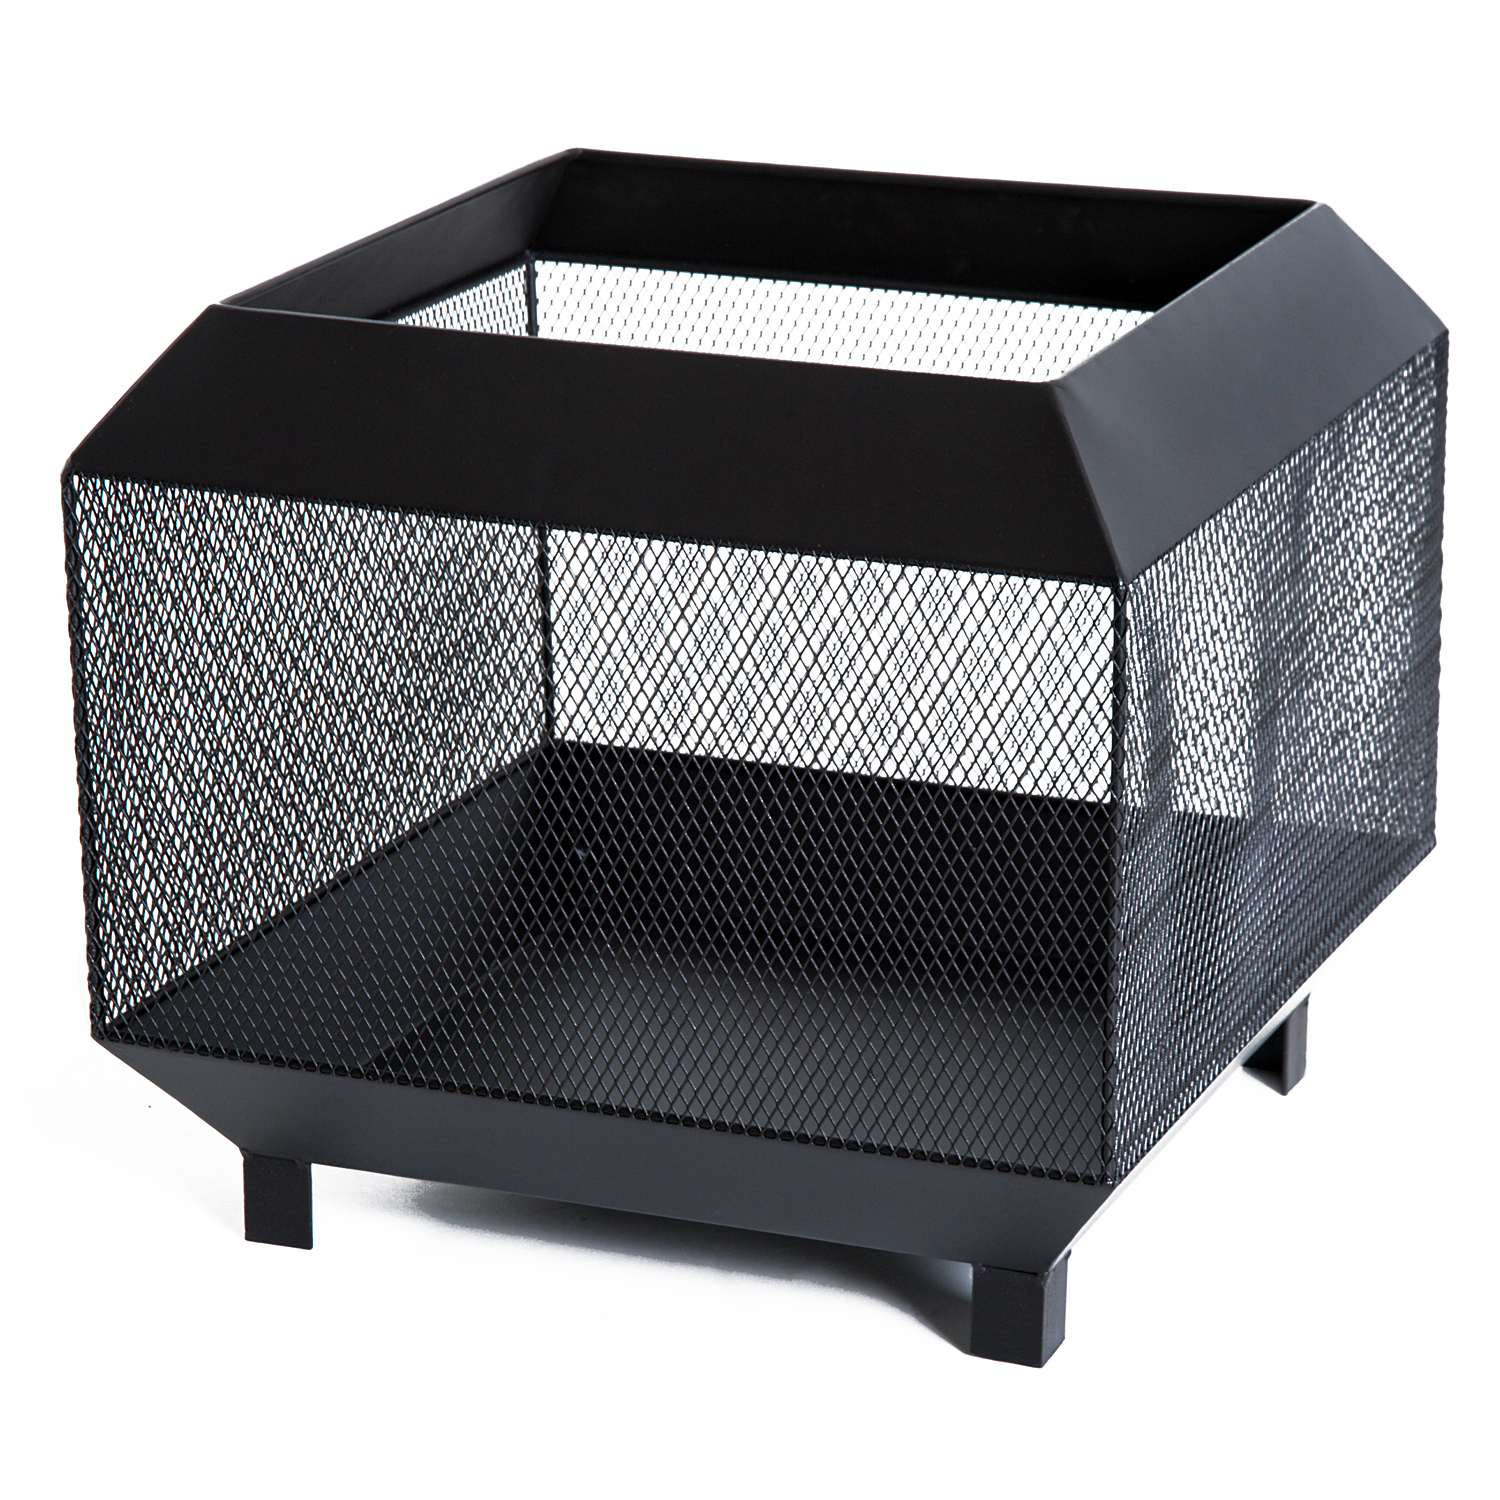 Image of £38.99 Outsunny Fire Pit, Square Shape, Steel-Black / Metal Mesh Firepit Sqaure Heater Stove Backyard Garden Wood Charcoal Burner Outdoor Patio Black Buring Steel 842-090 5056029888063